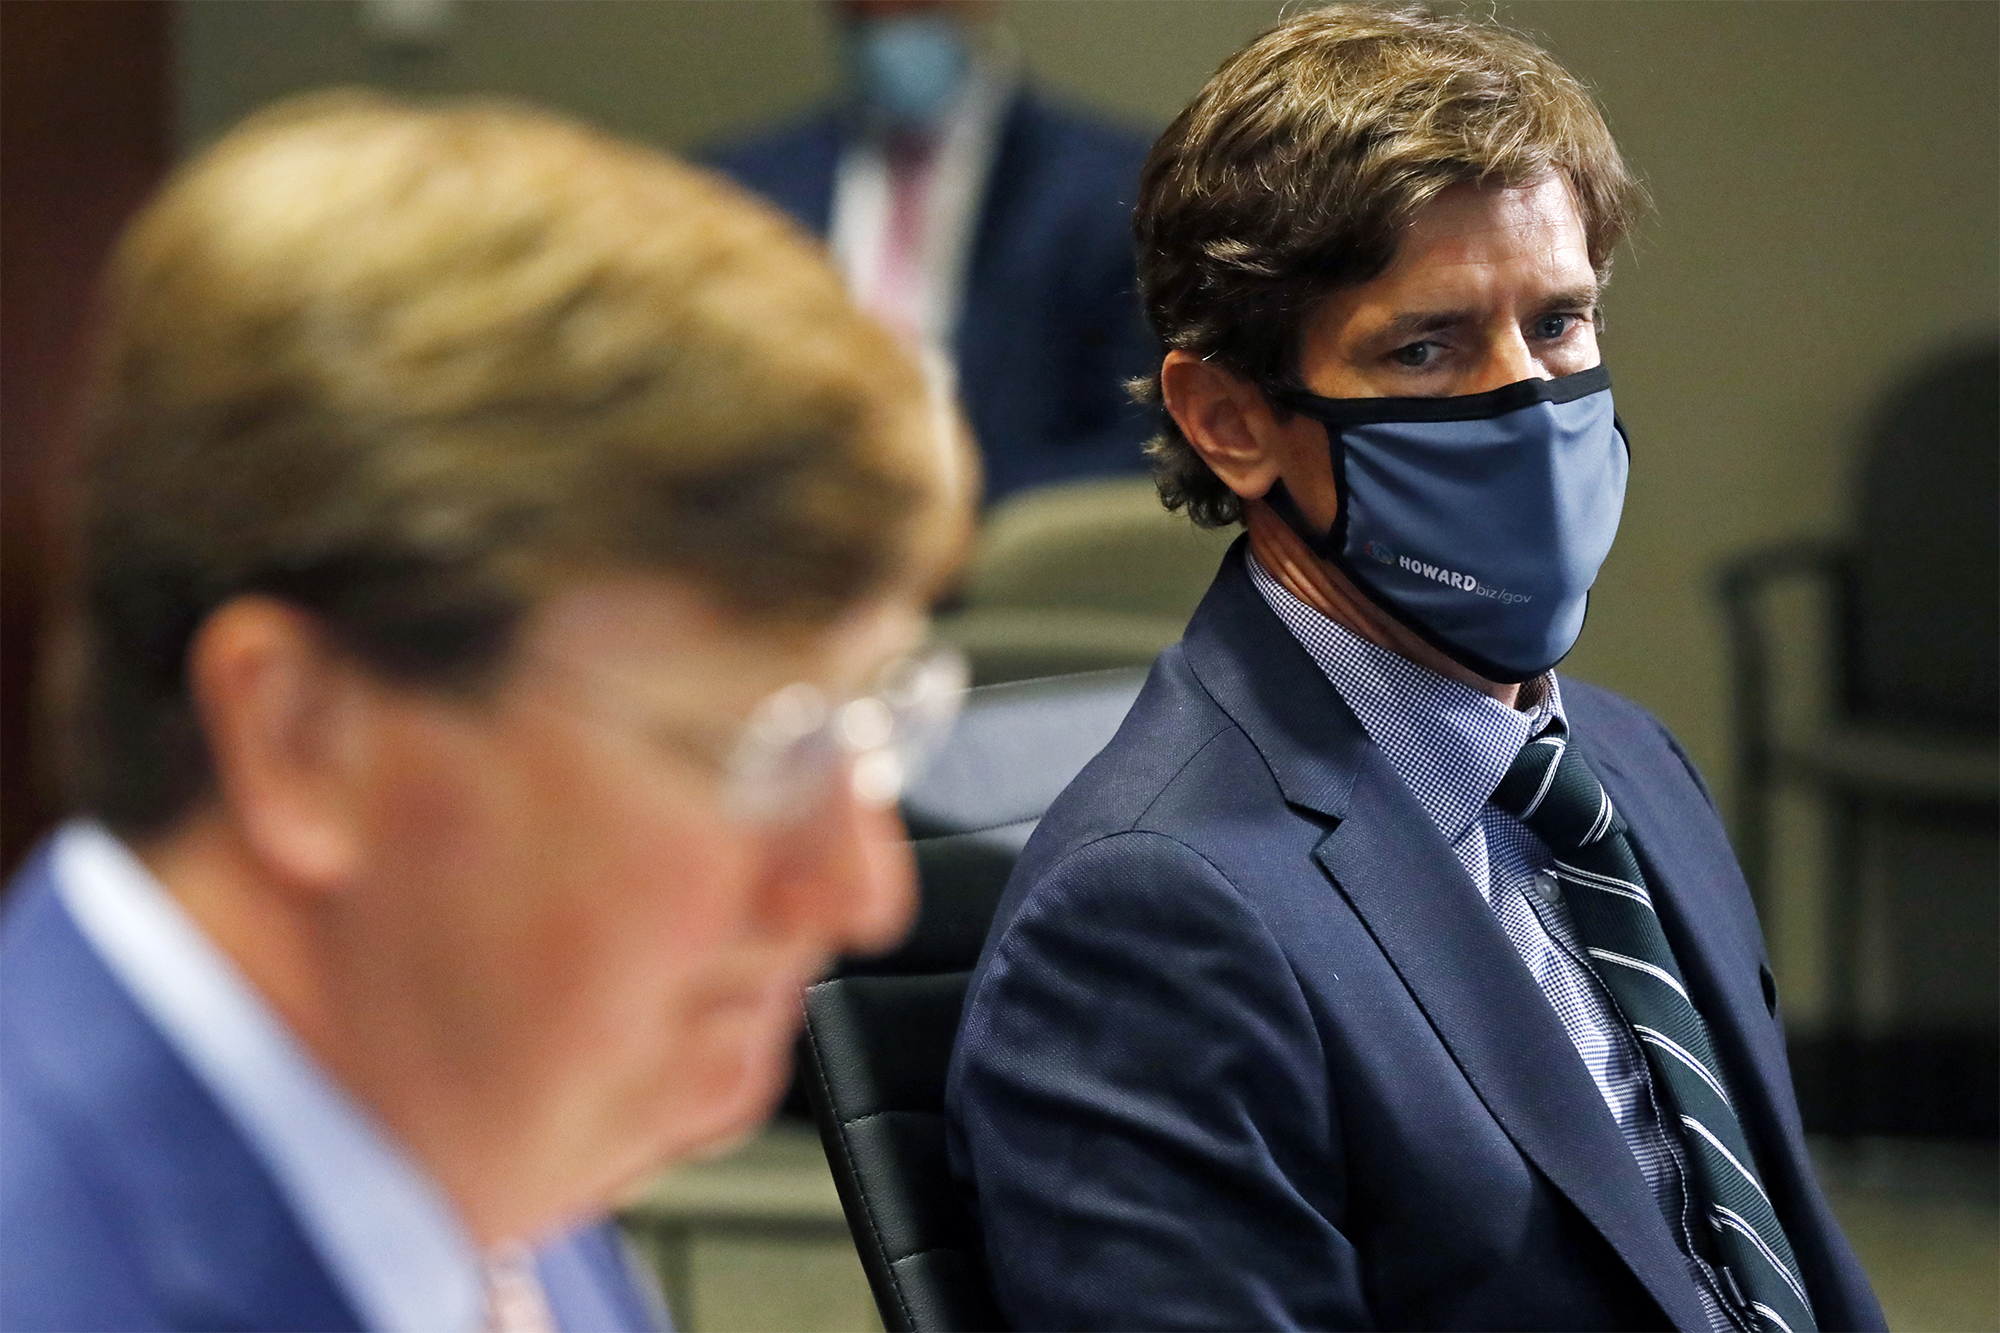 Mississippi State Health Officer Dr. Thomas Dobbs, right, listens as Gov. Tate Reeves responds to a reporter's question during the governor's Covid-19 press briefing in Jackson, Mississippi on Tuesday, August 4.